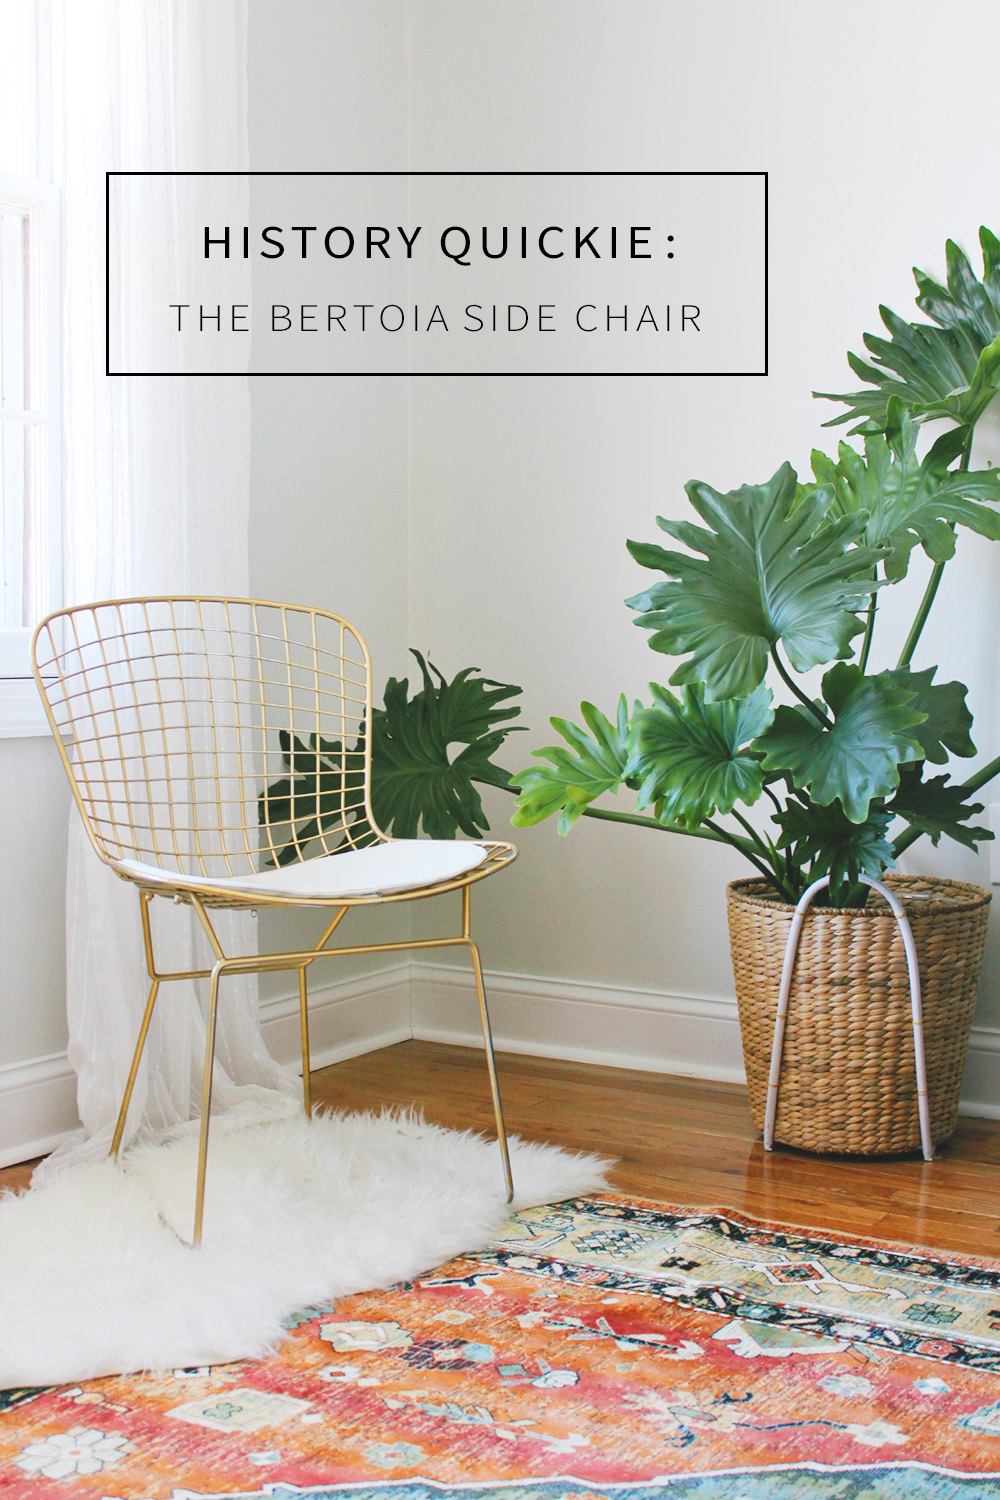 History Quickie: Harry Bertoia and His Side Chair